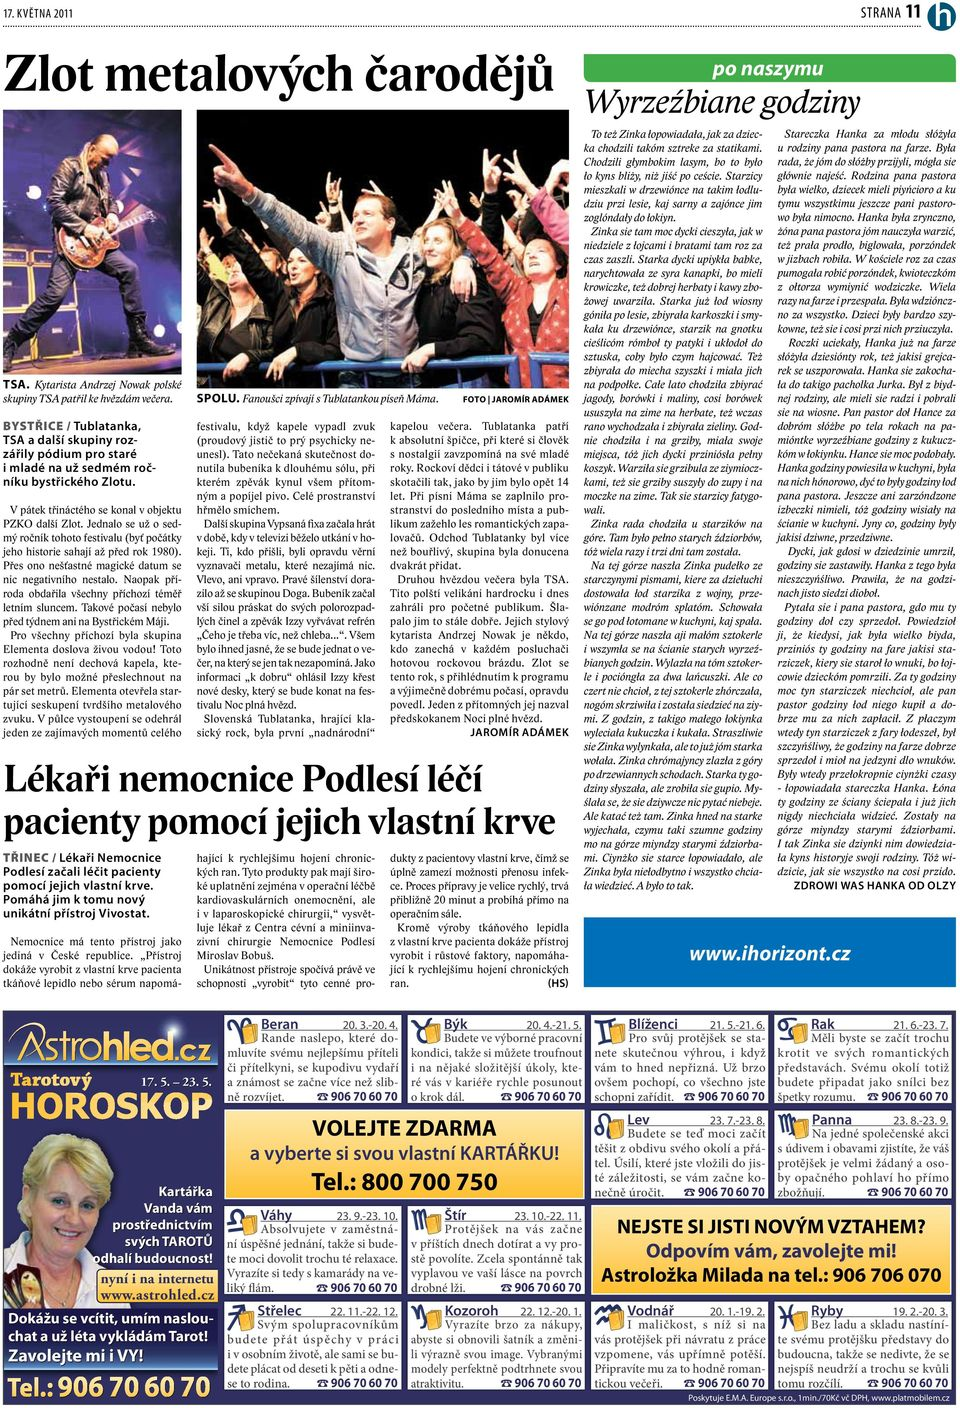 Online pujcky jevíčko eu photo 6